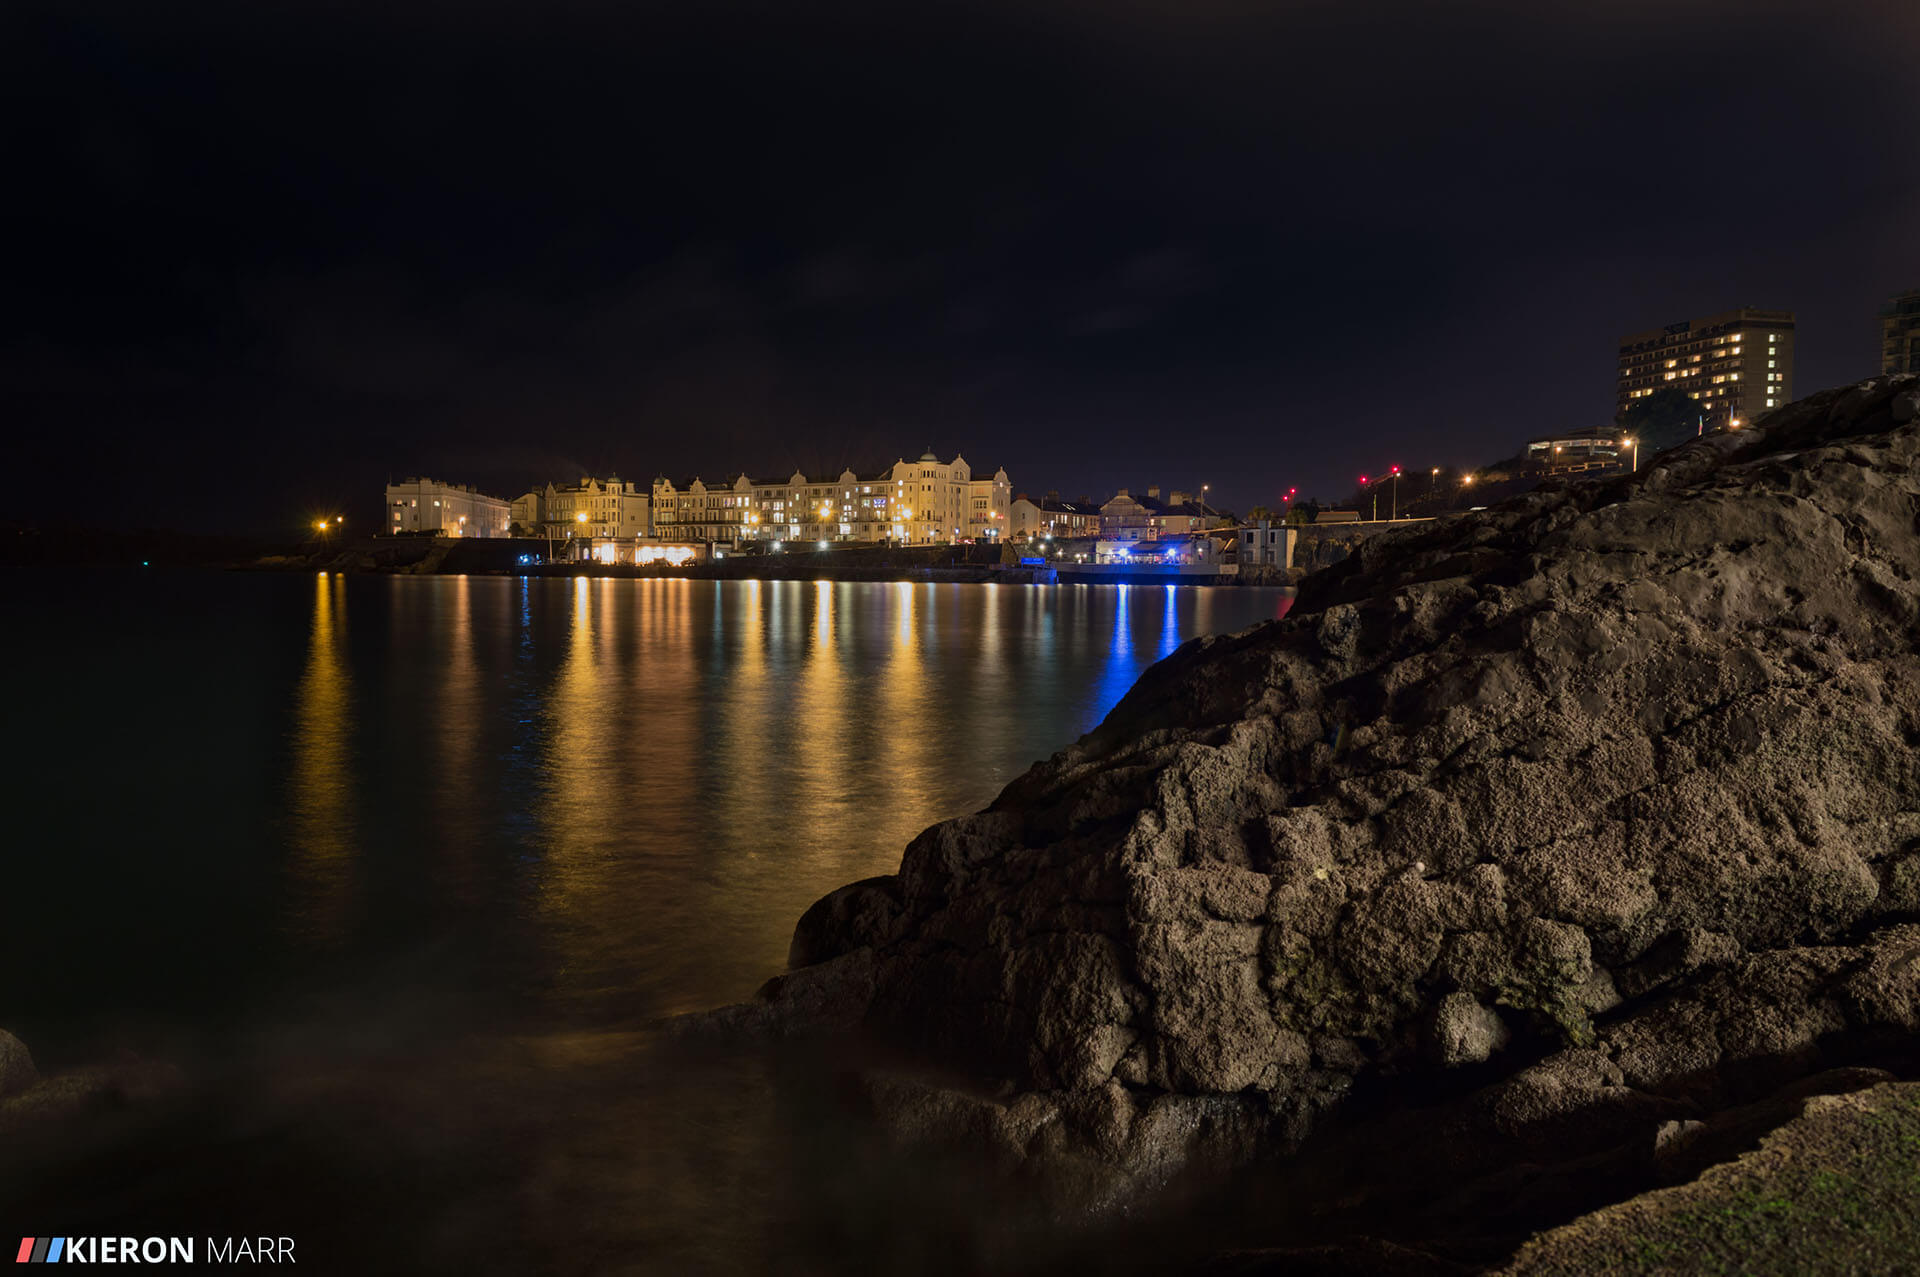 Plymouth Hoe at night with the lights reflecting off the water